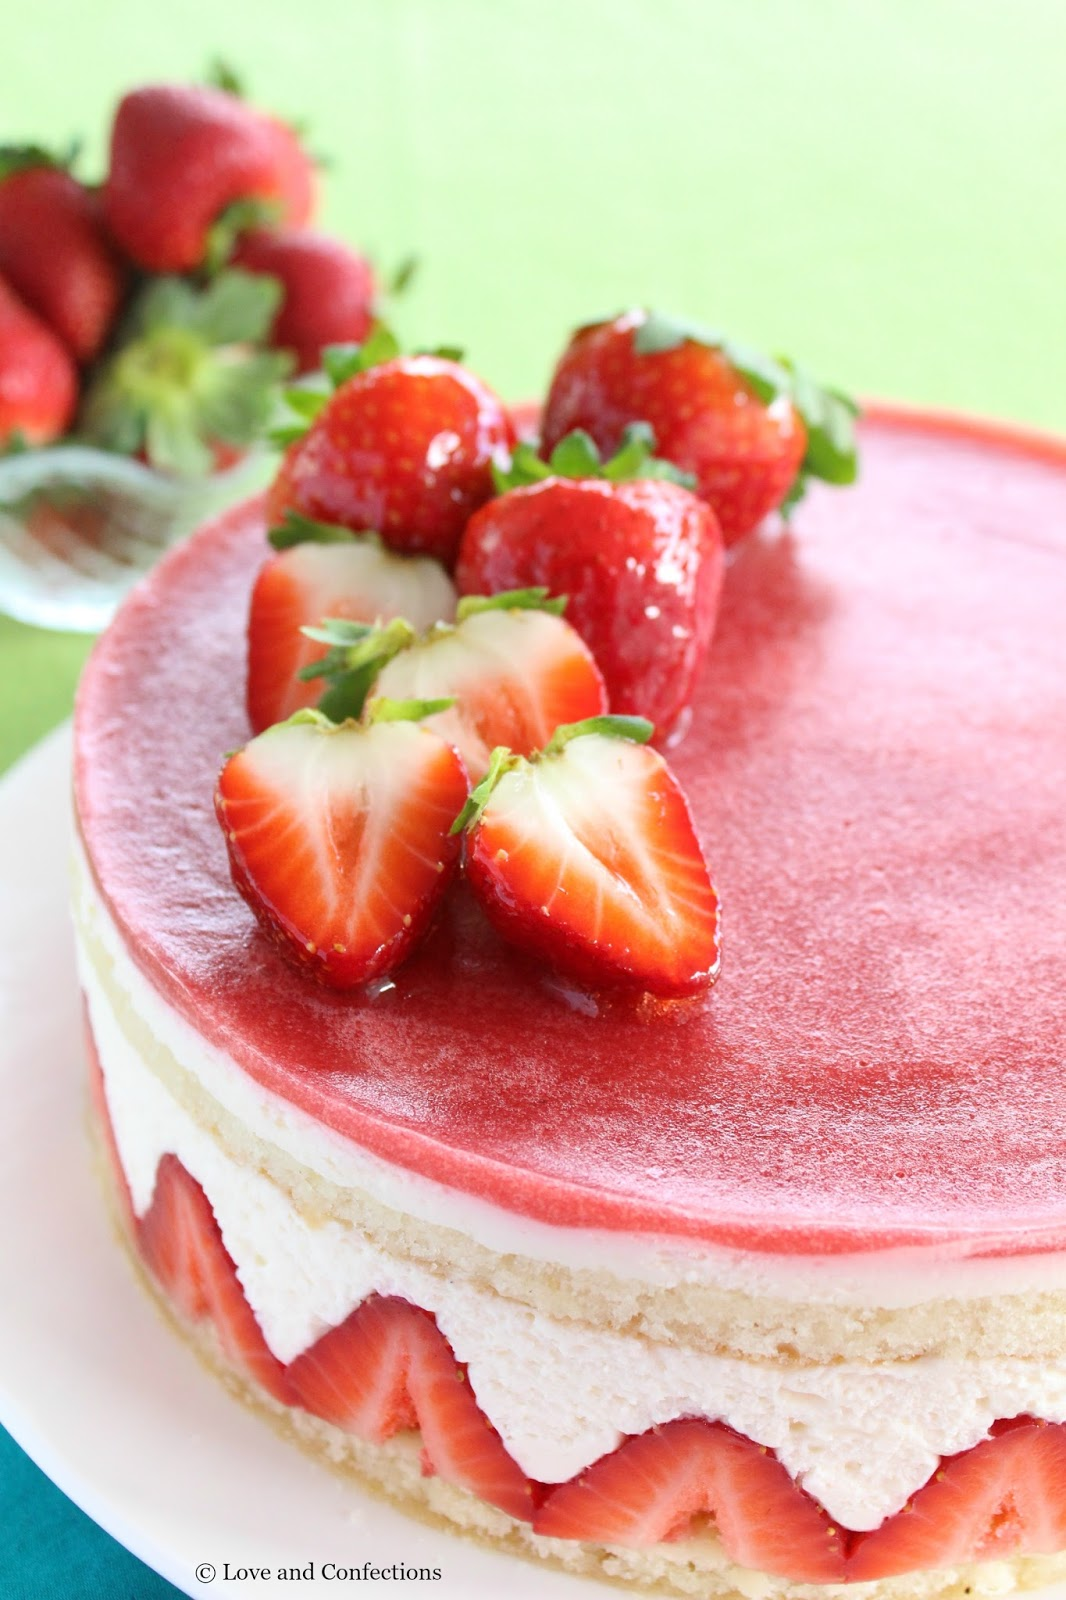 STRAWBERRY FRAISIER LOVE AND CONFECTIONS